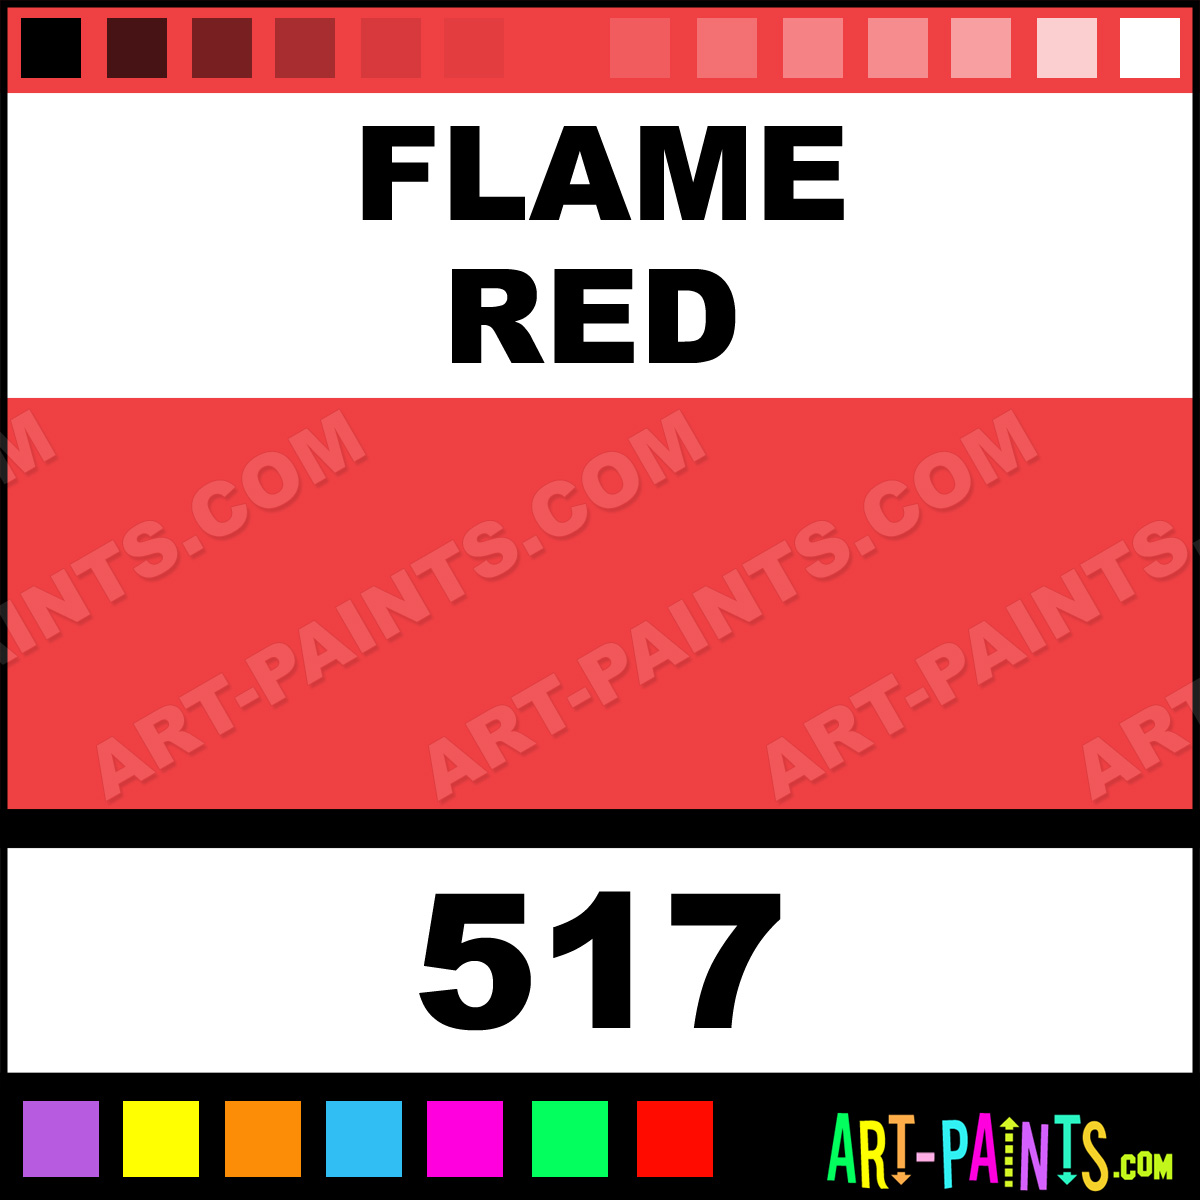 Flame Red Designer Gouache Paints - 517 - Flame Red Paint, Flame Red